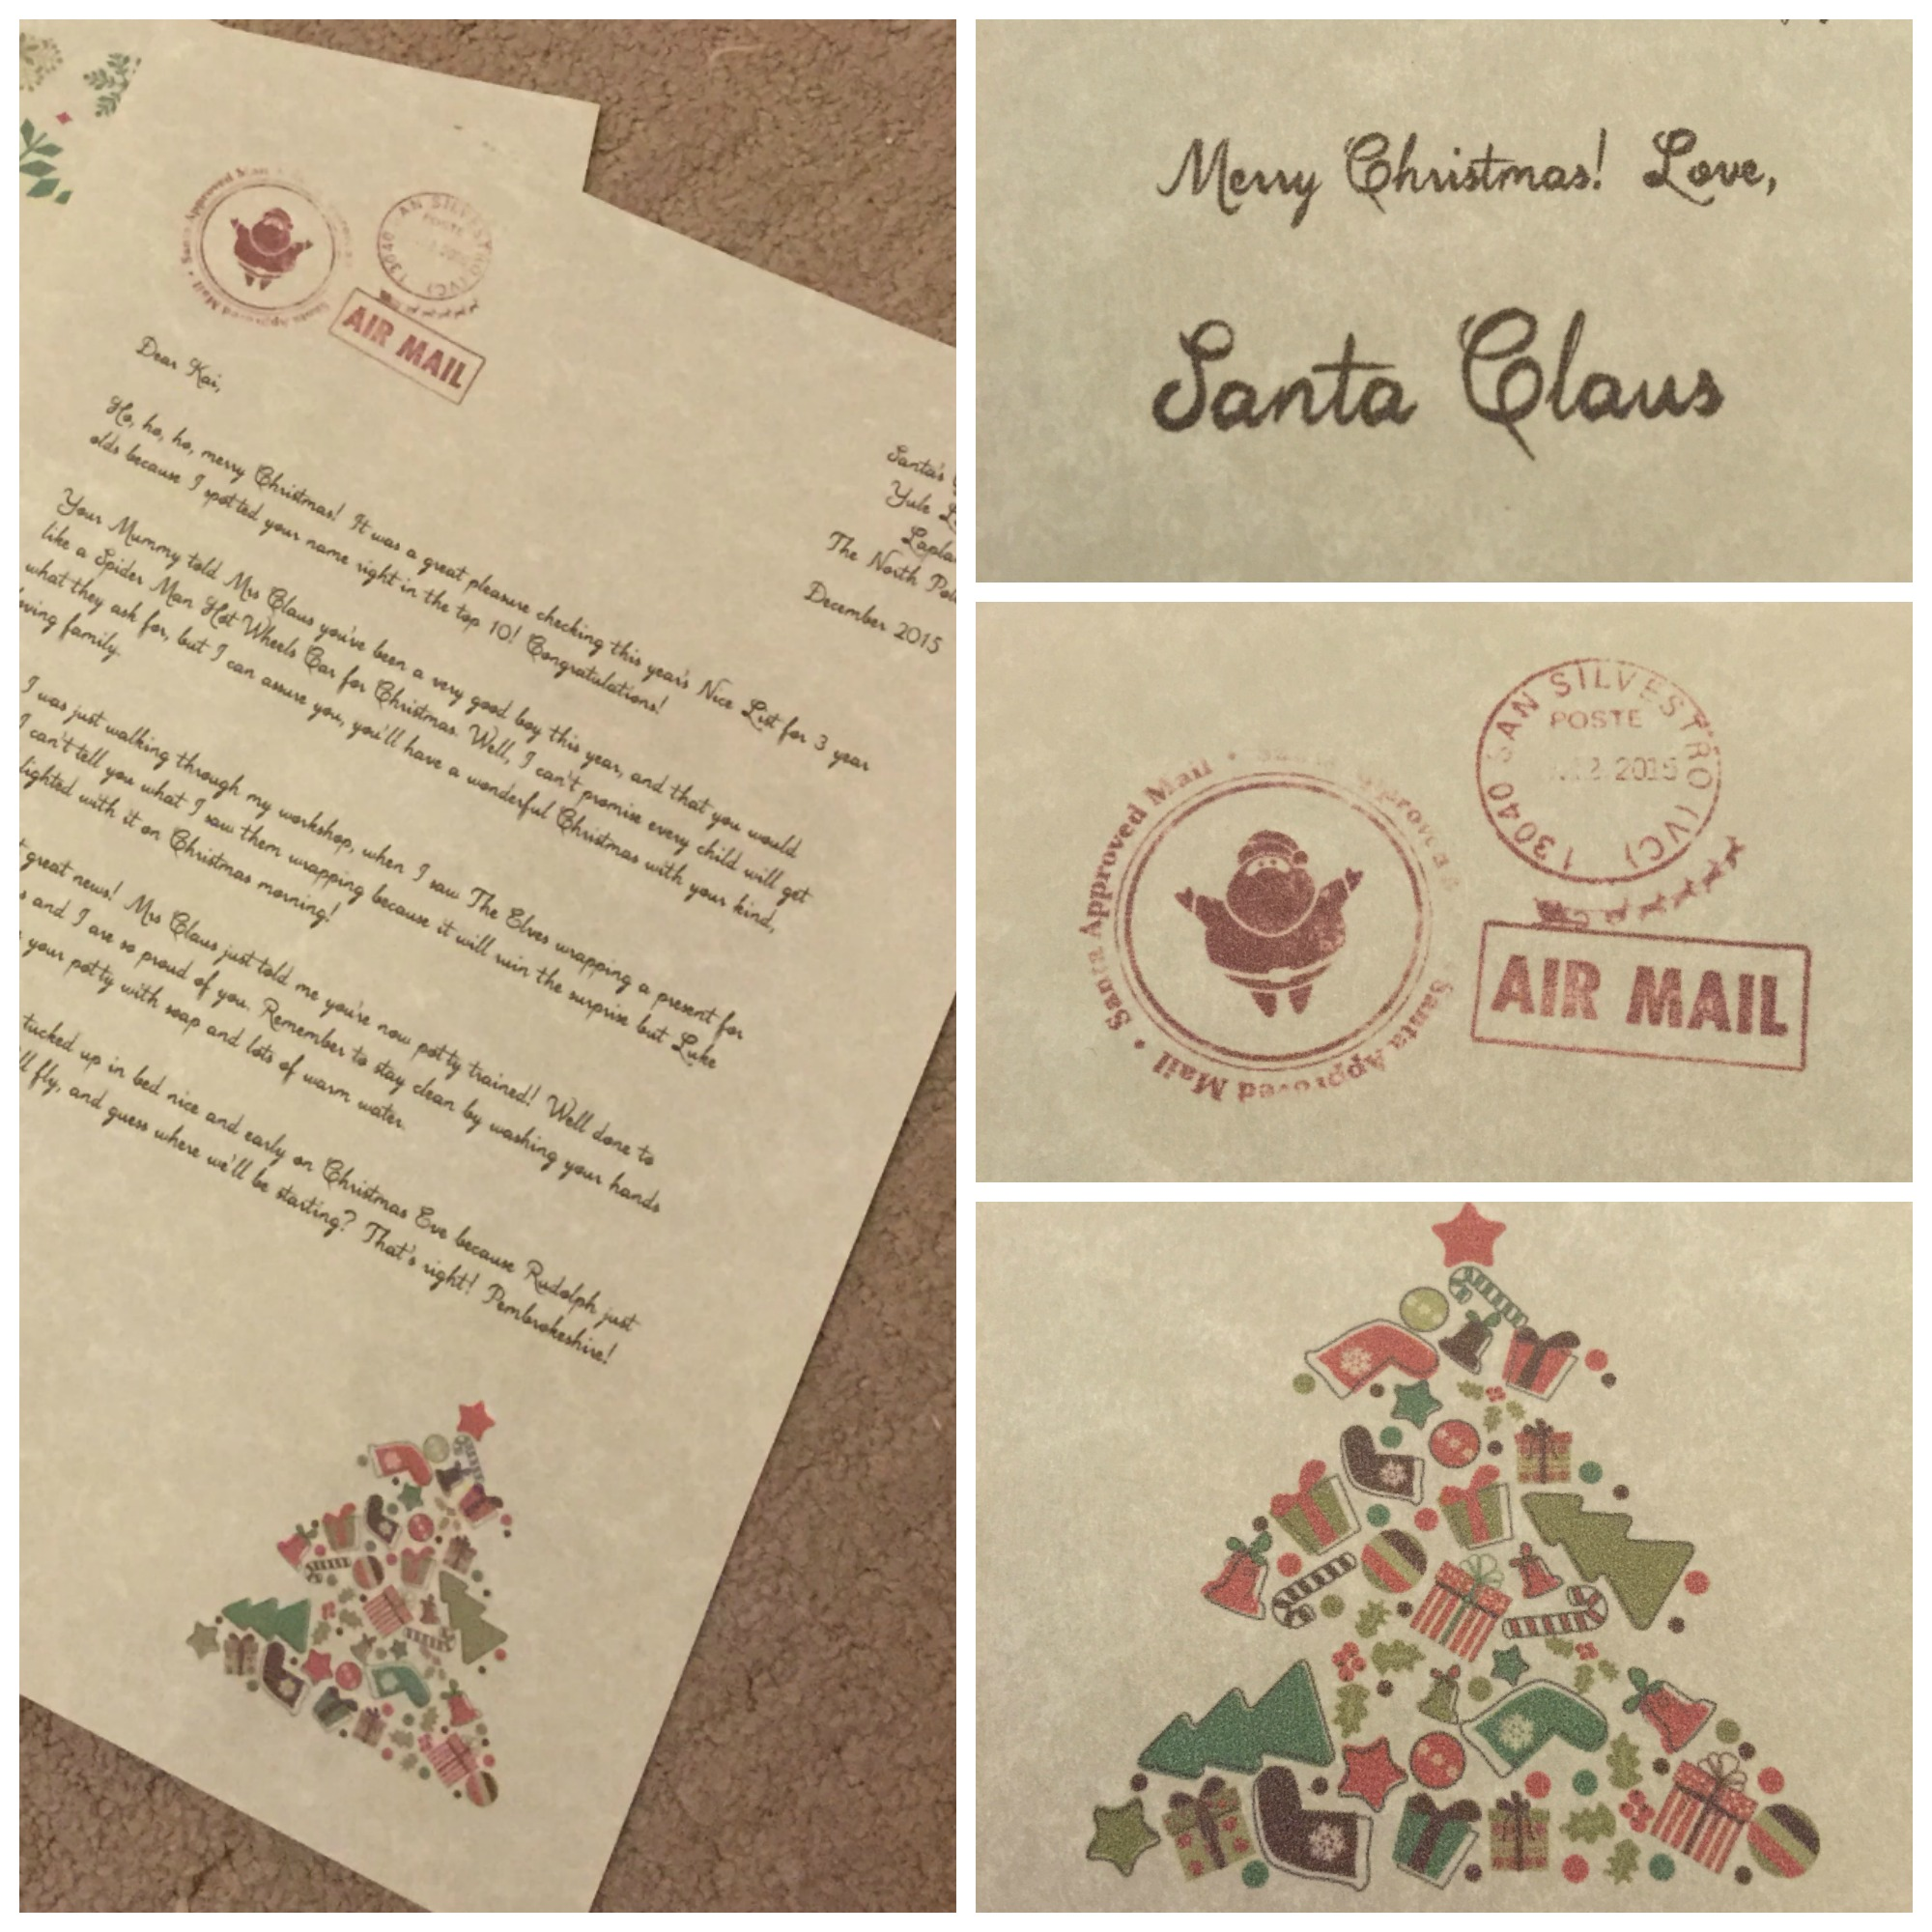 My Letter From Santa Claus  Ickle Pickles Life And Travels